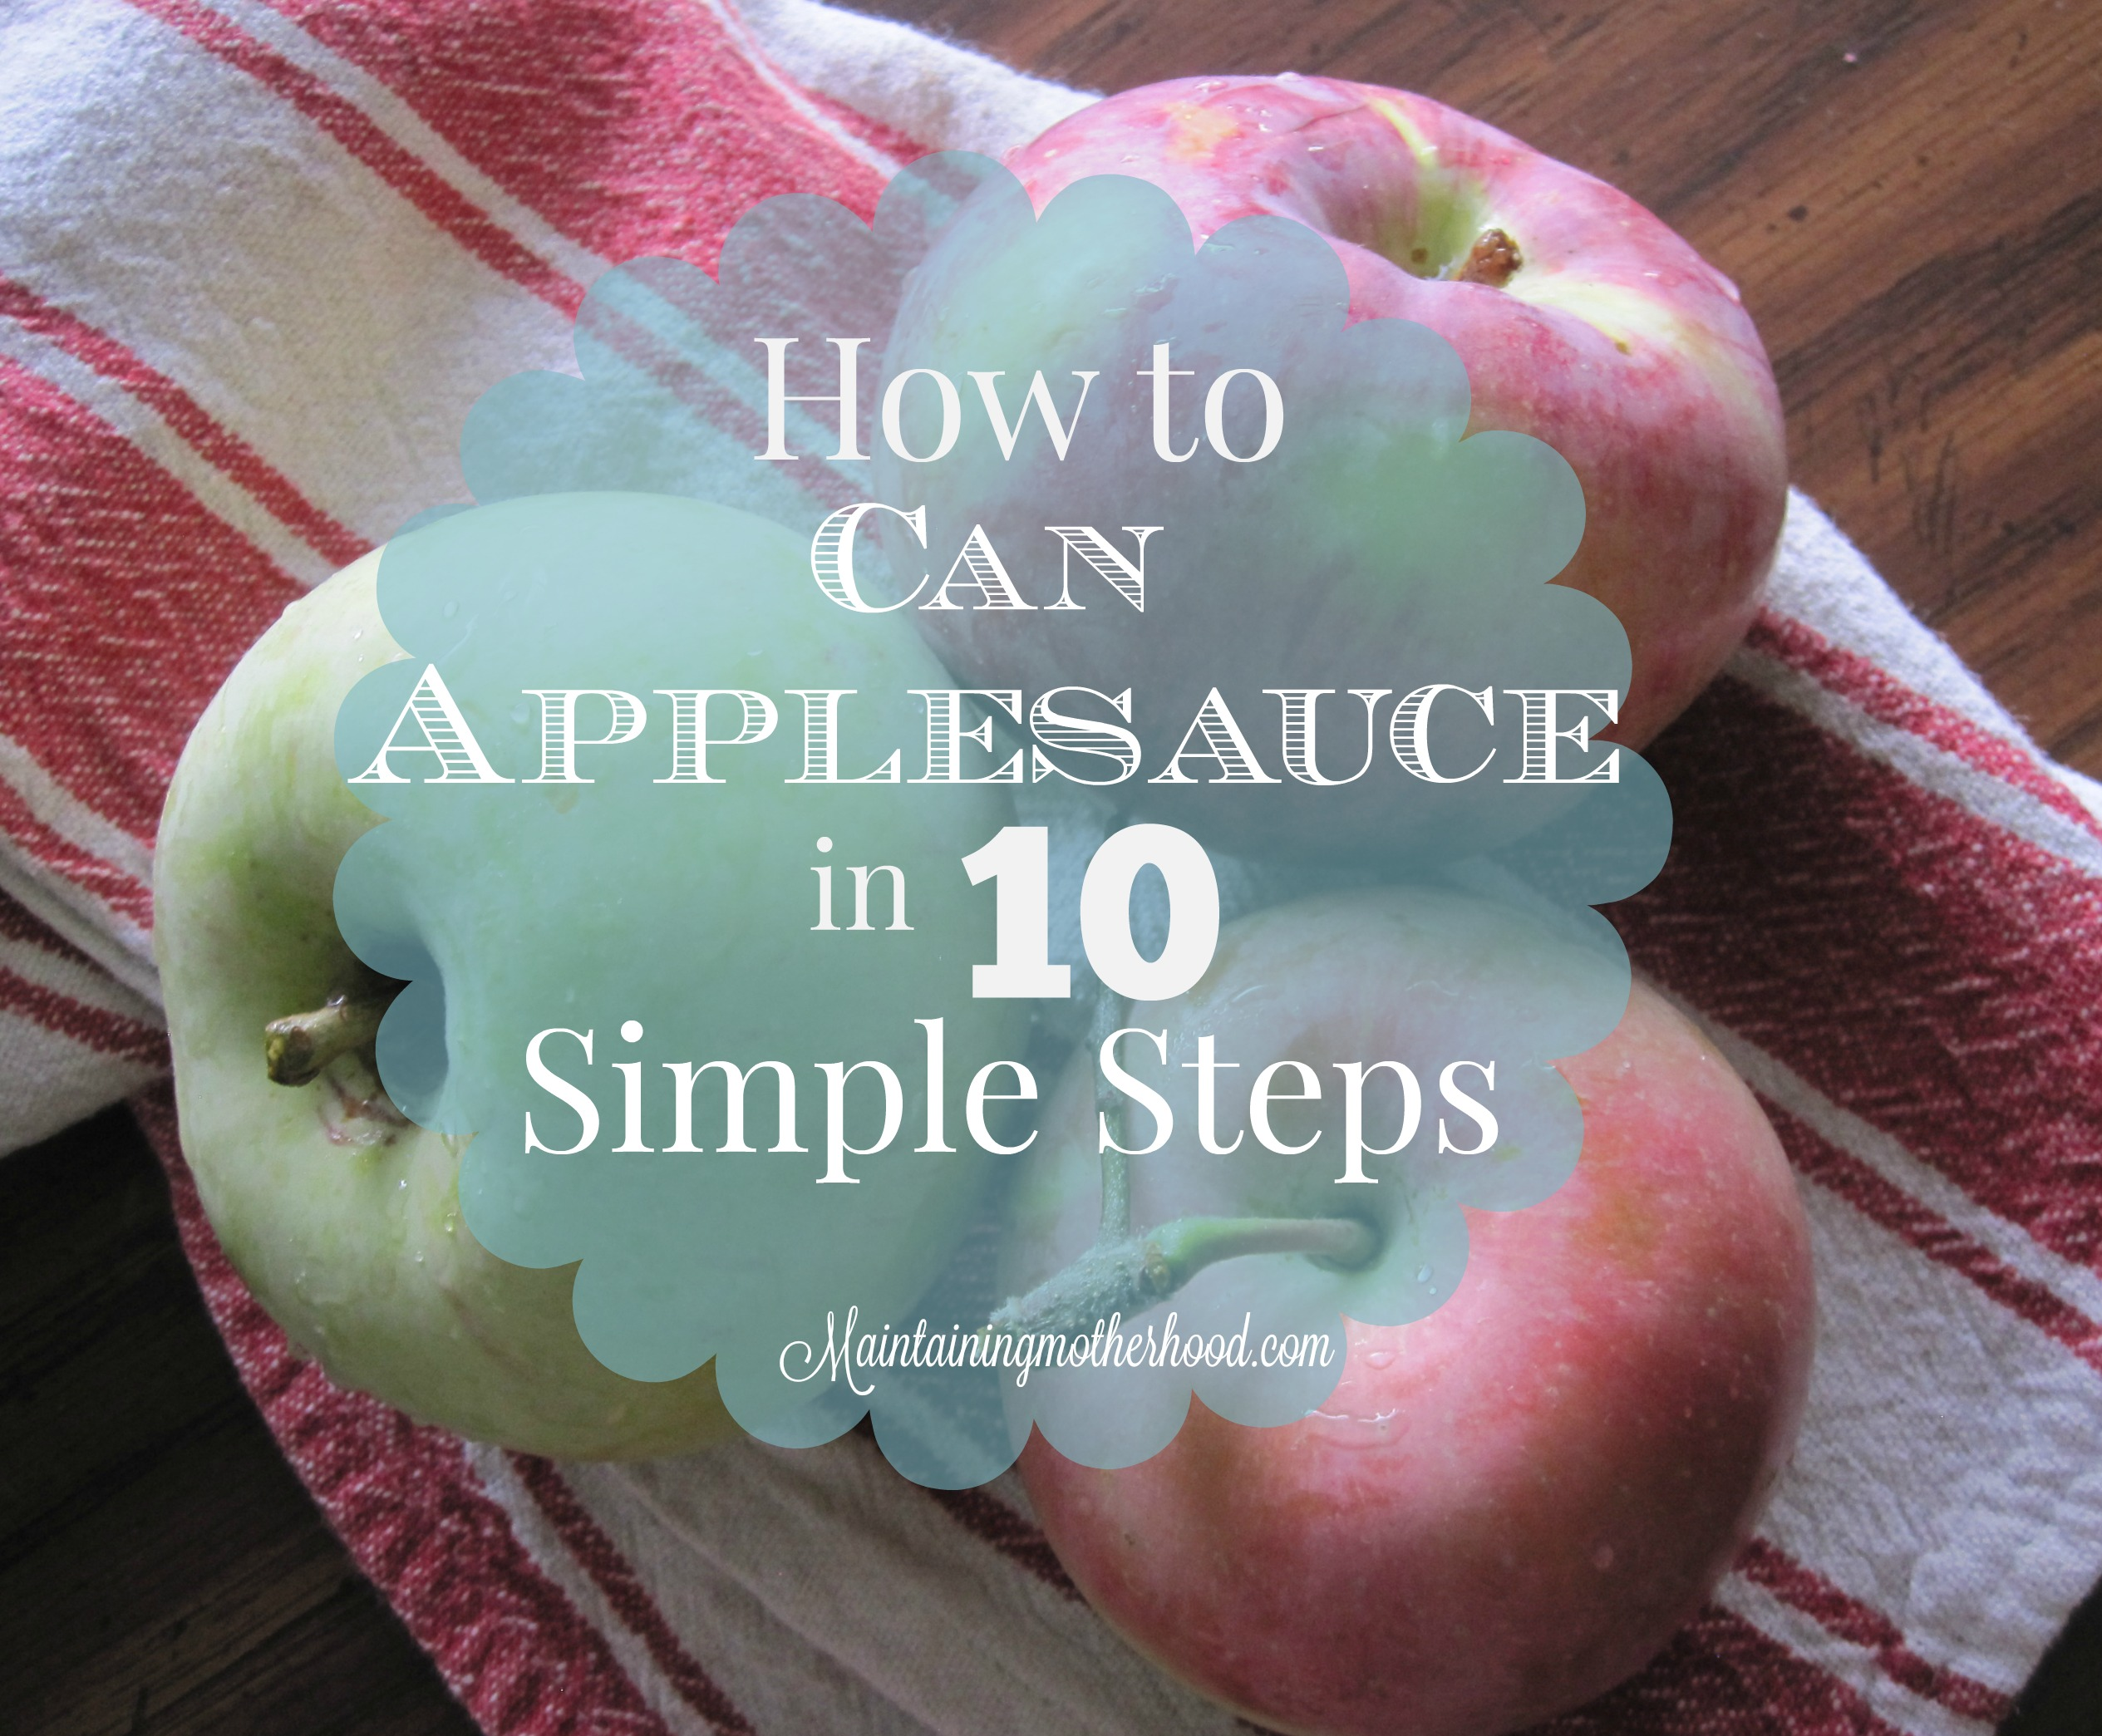 We go a little bit crazy preserving the deliciousness of fresh apples. Here are 10 simple steps to walk you through how to can your applesauce.